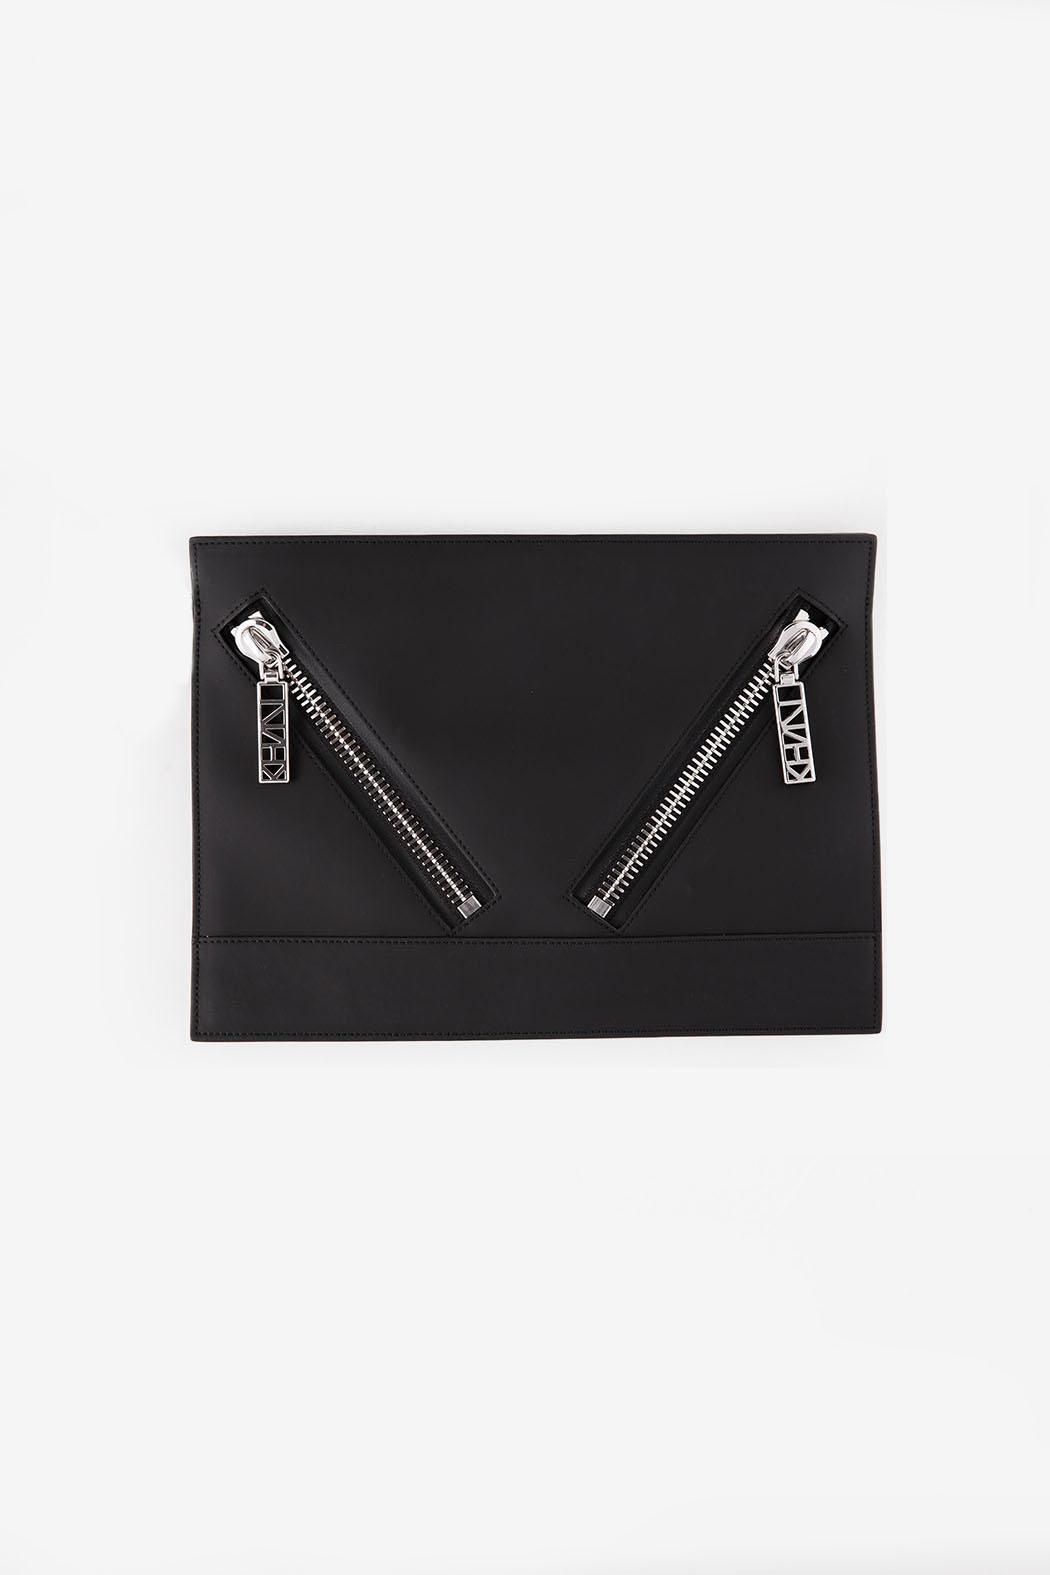 Kenzo Black Kalifornia Clutch - Main Image